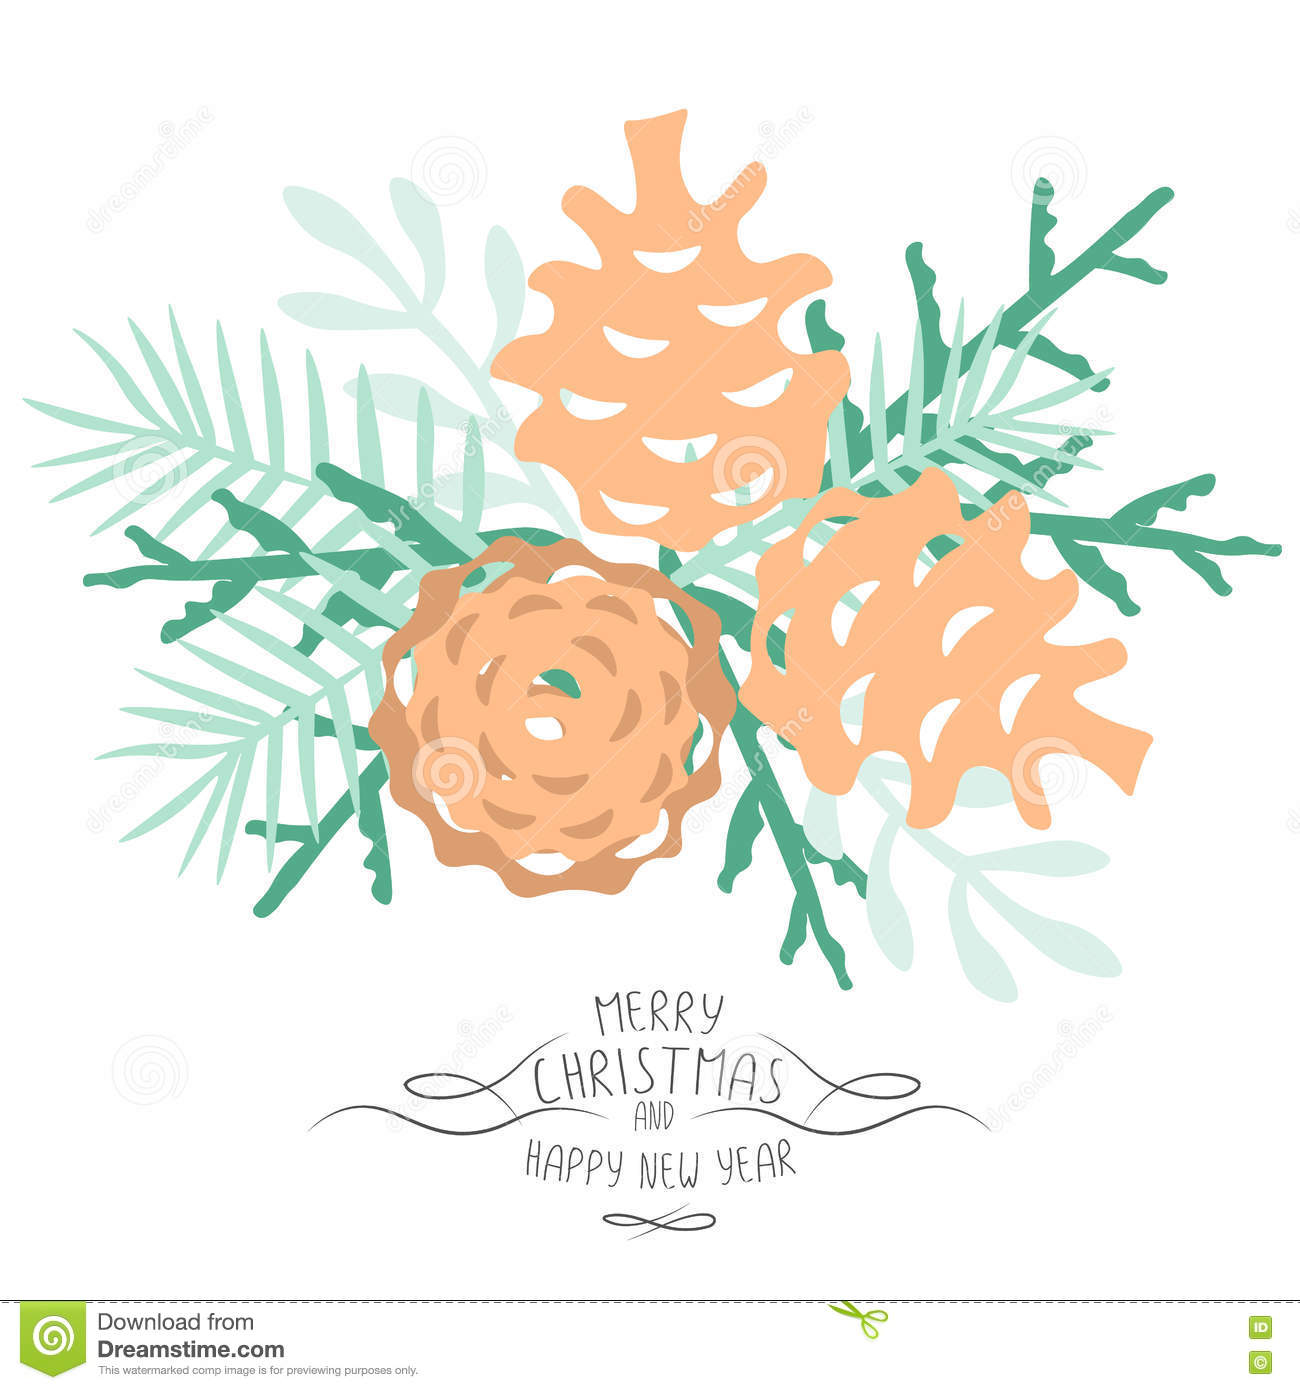 vintage merry christmas and happy new year background pine cones and spruce twigs stylish vector illustration on winter greeting card